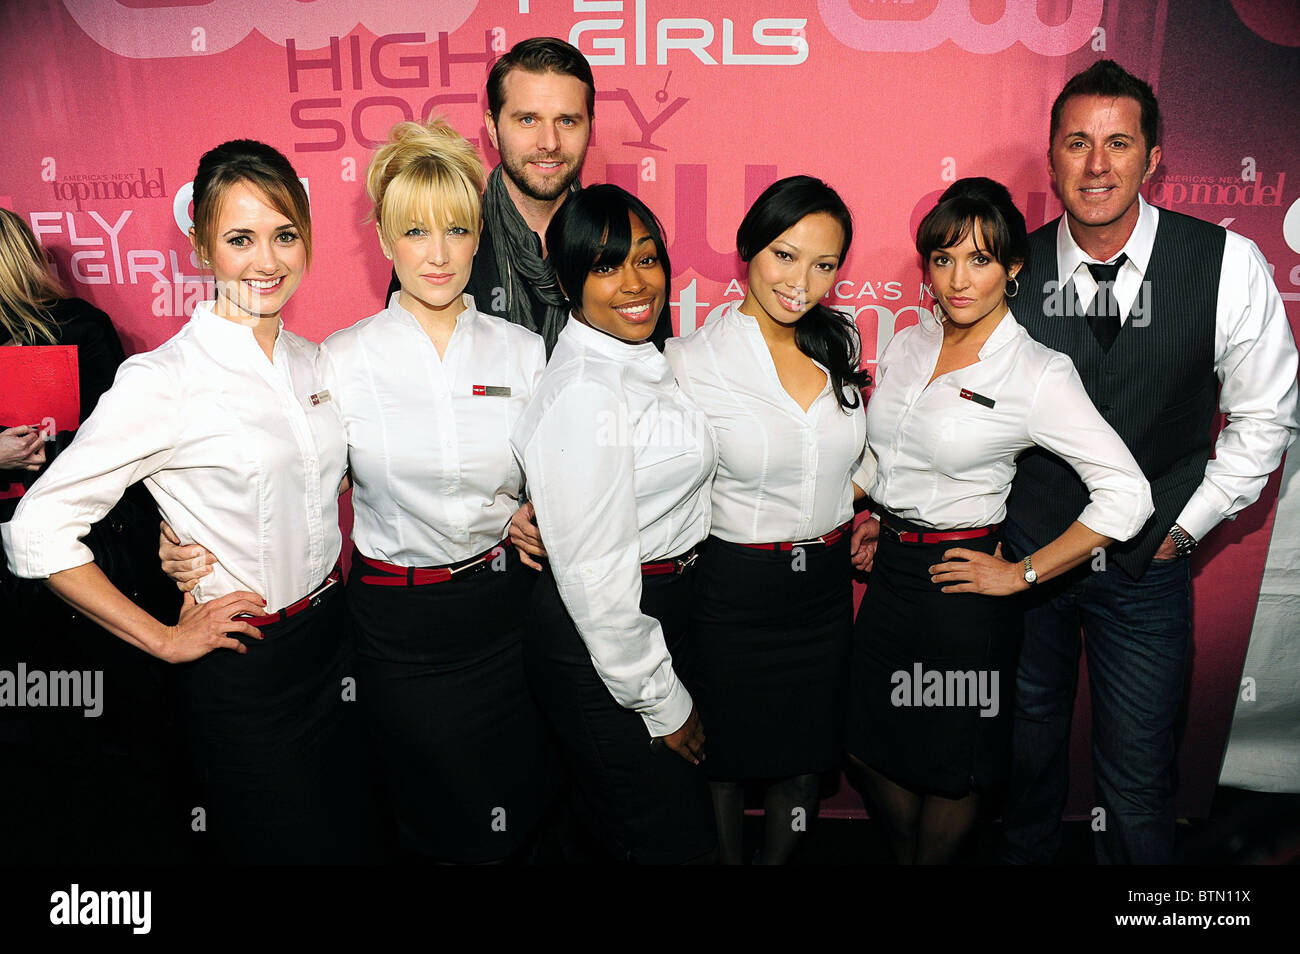 Cast Of Fly Girls High Resolution Stock Photography And Images Alamy